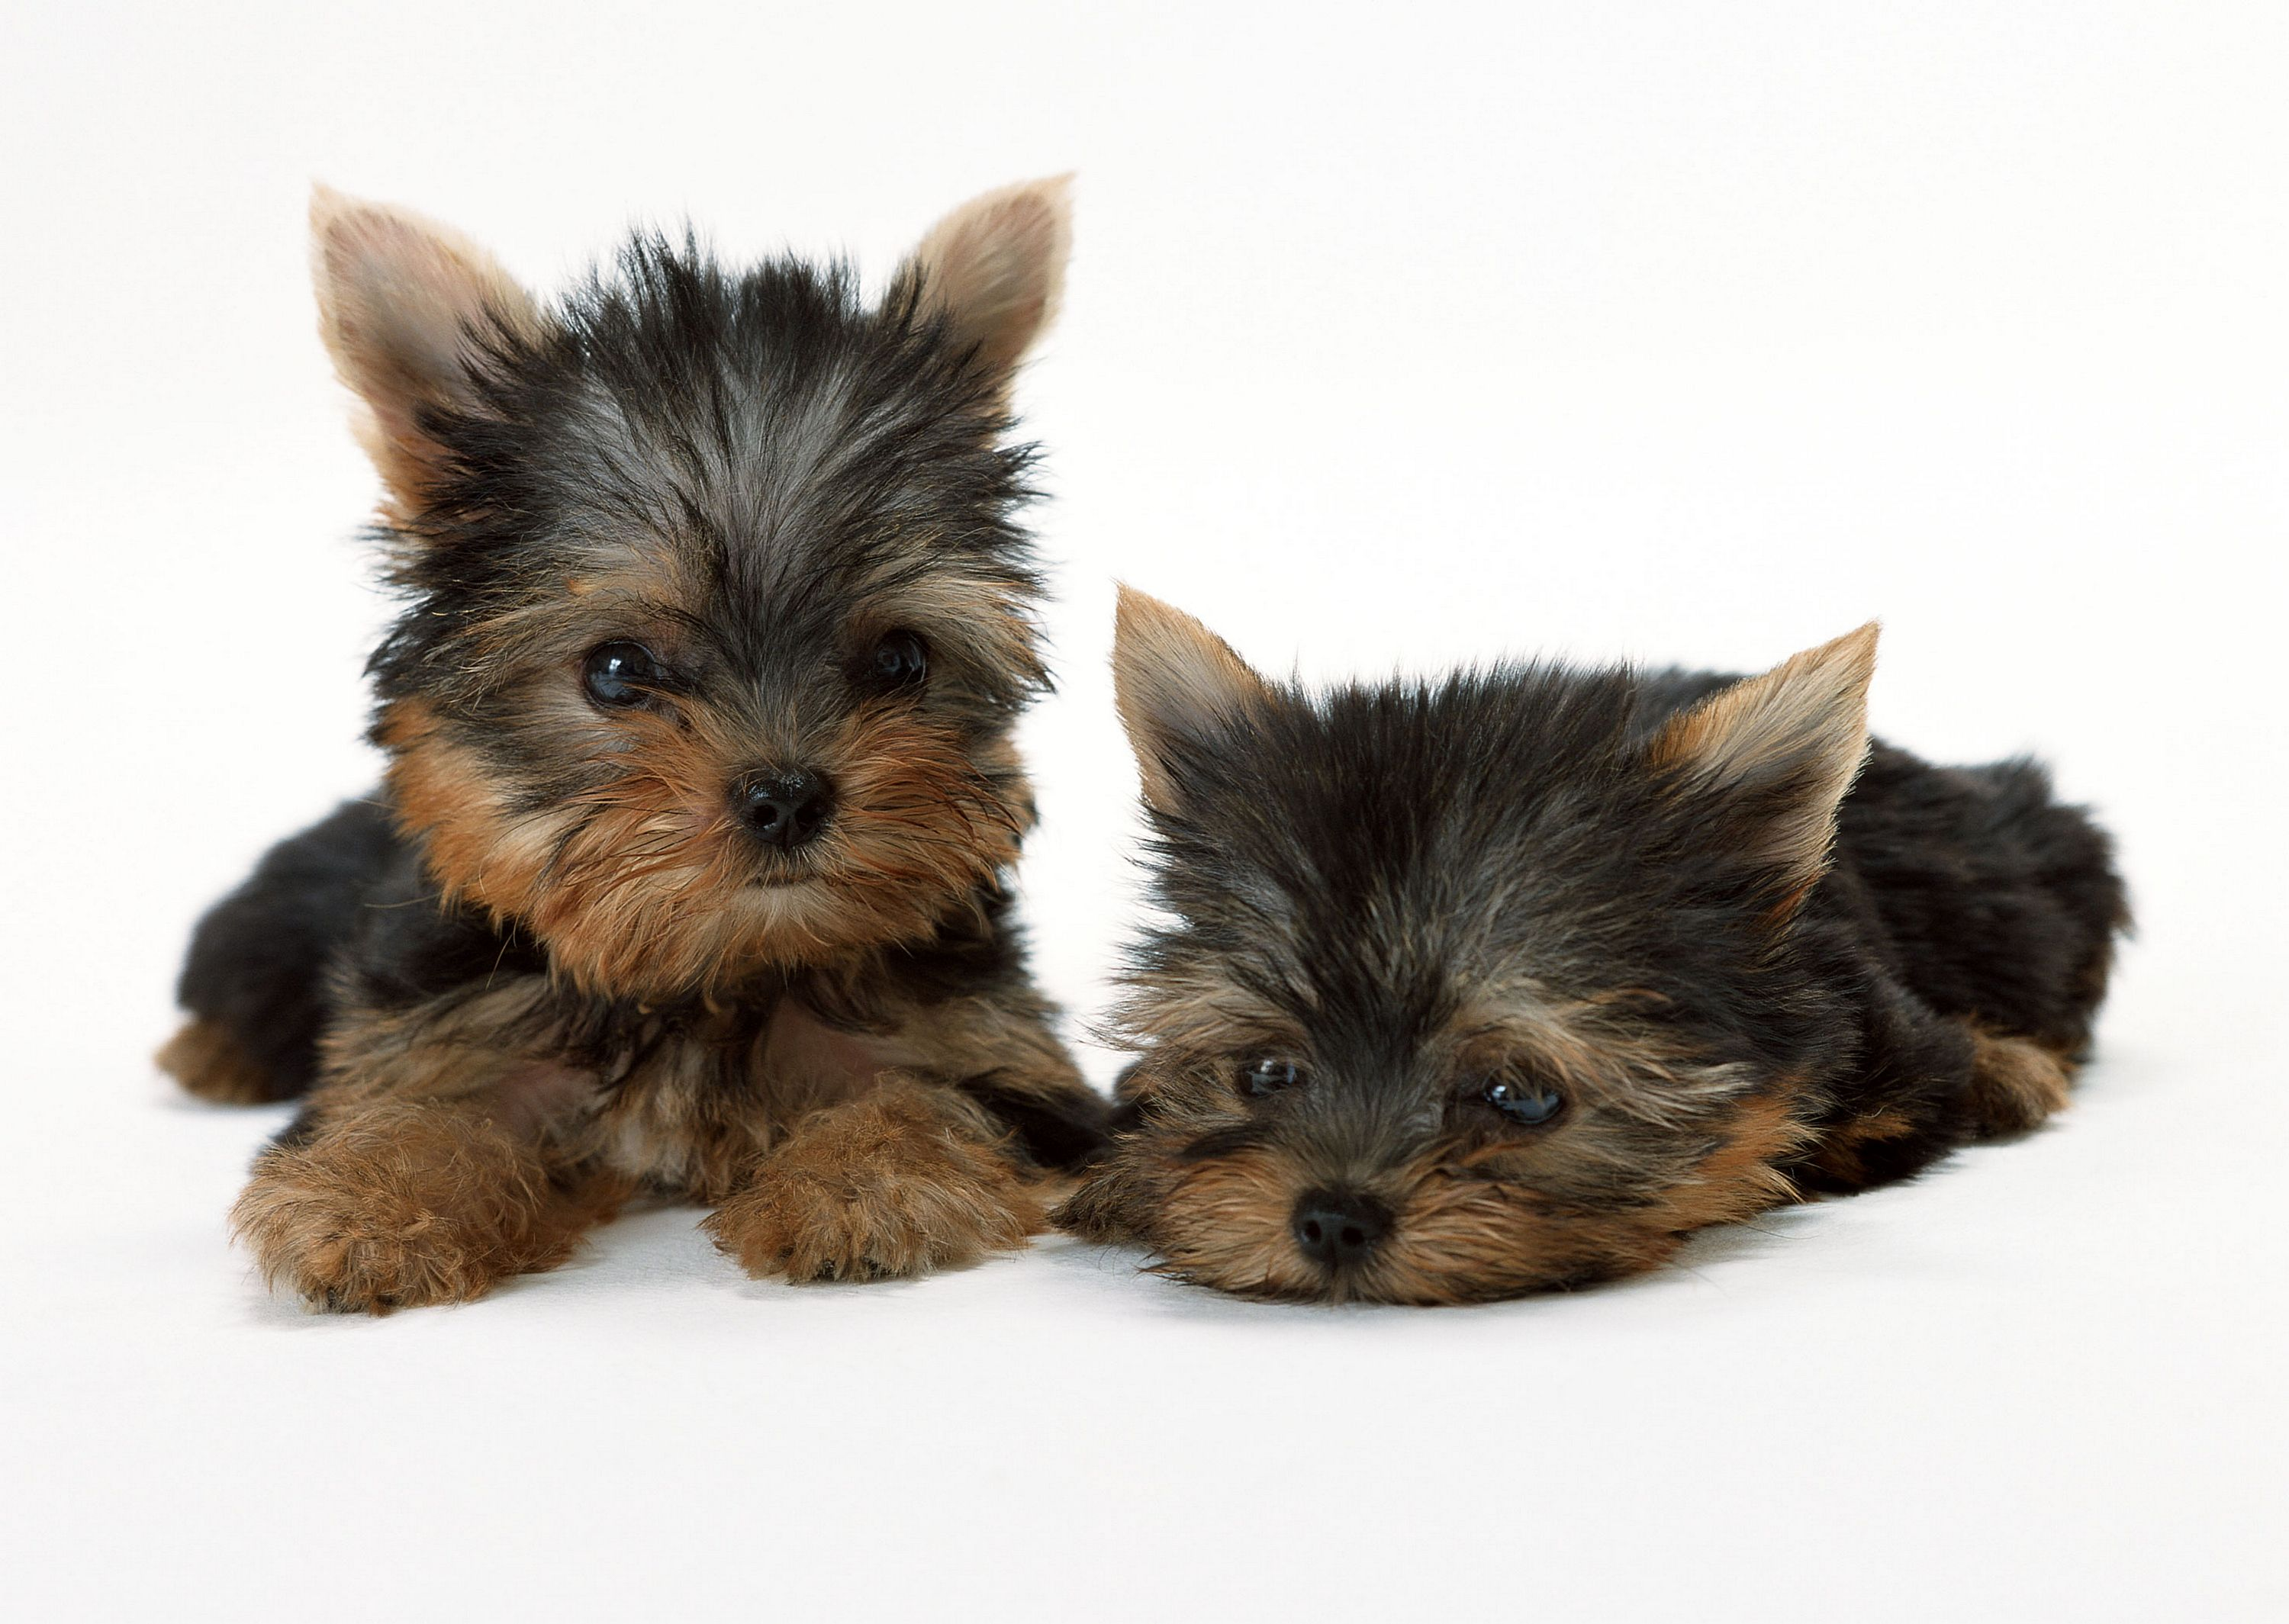 and they call me mellow yellow yorkie httpeasywaytopottytrainyourdog blogspot com201605when to start housebreaking puppy html puppy love